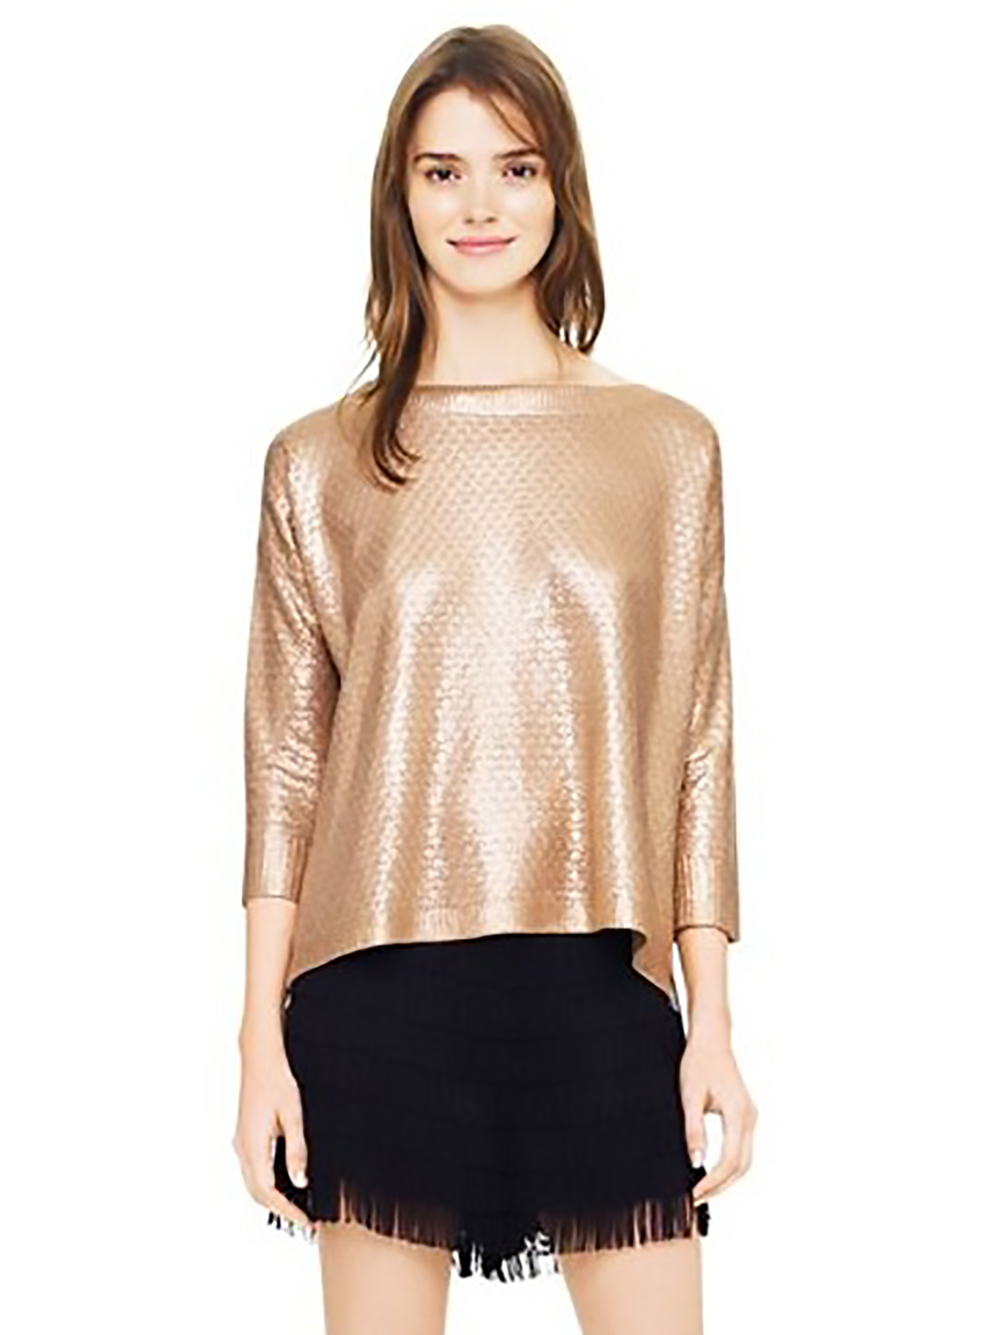 club monaco april foil sweater holiday separates 1500.jpg